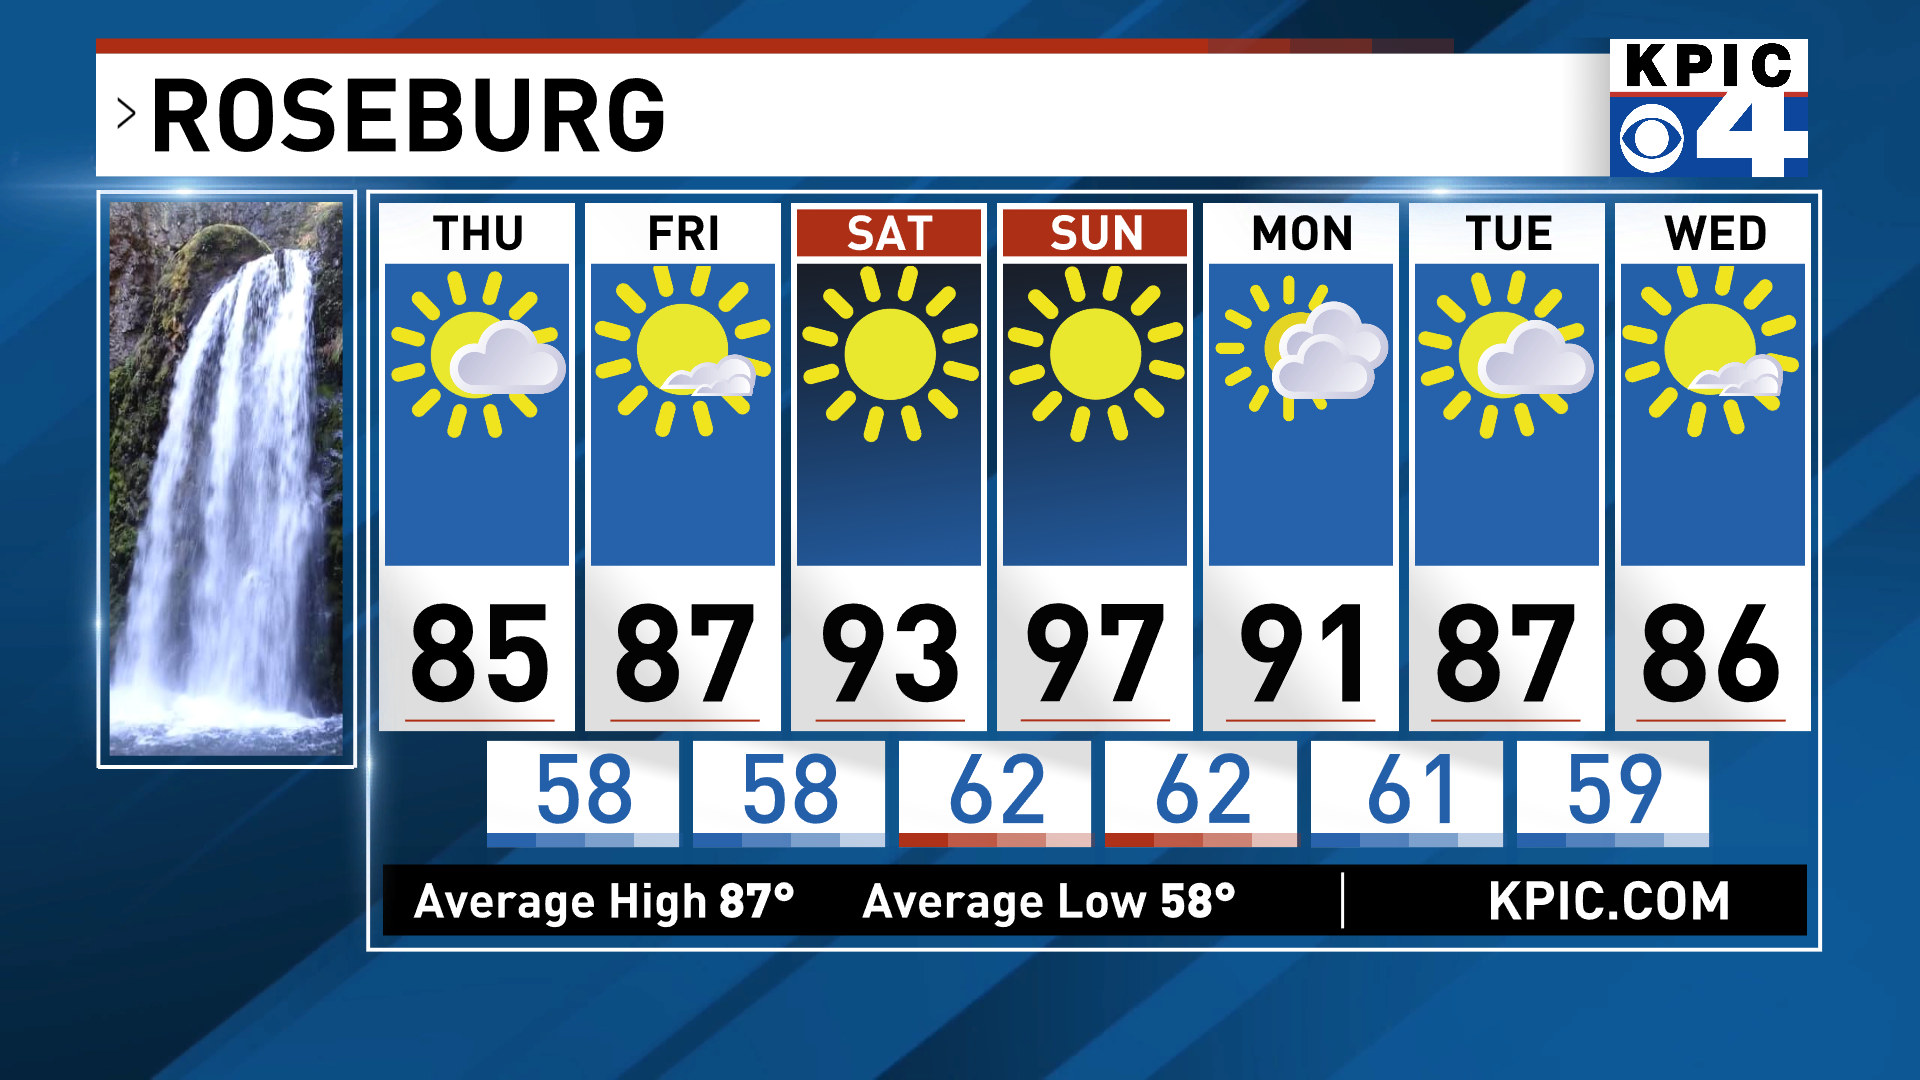 Roseburg 7 Day Forecast